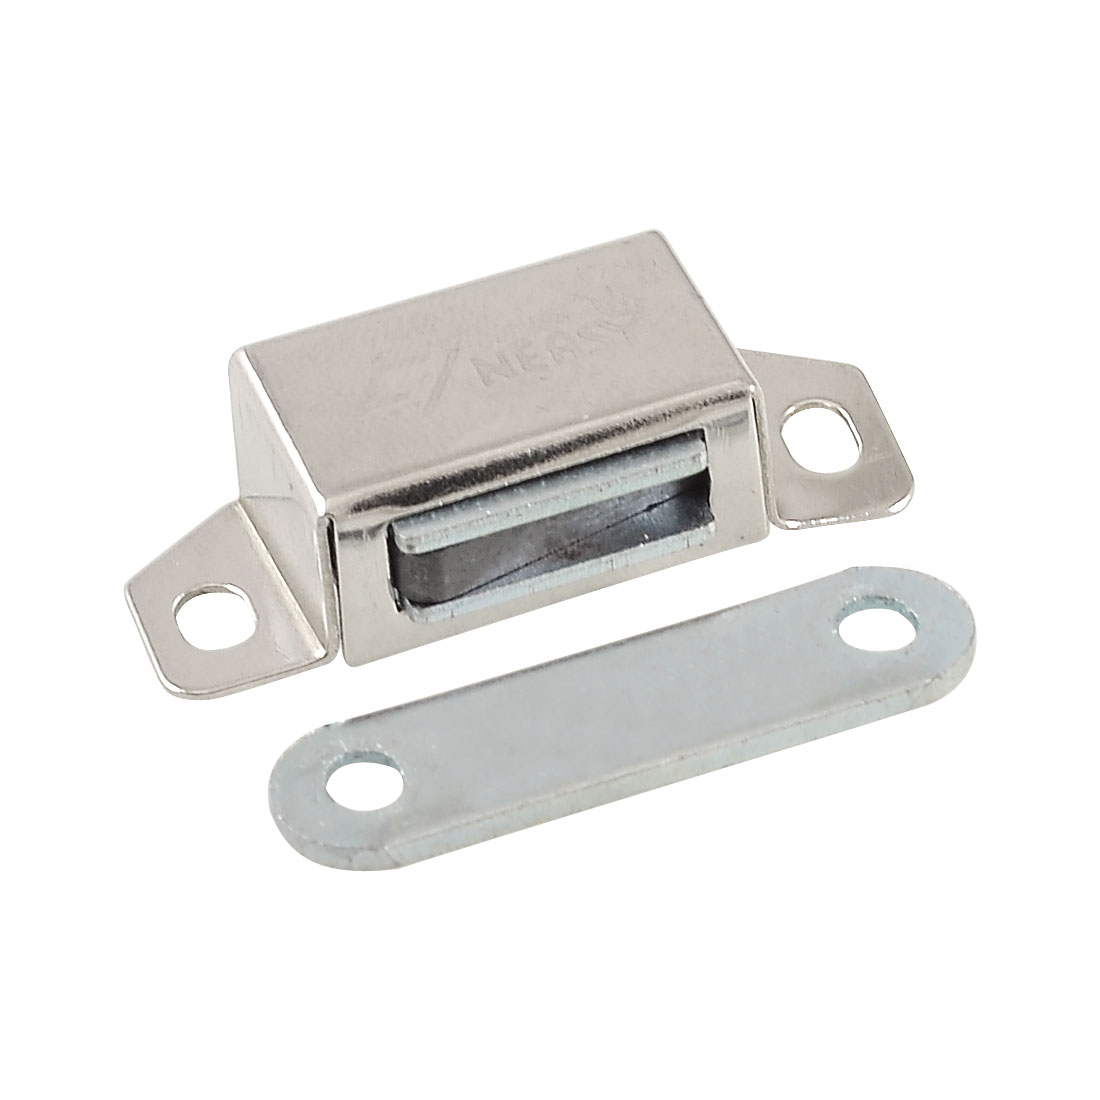 "Silver Tone Plate 1.4"" Length Magnetic Catch for Cabinet Door"